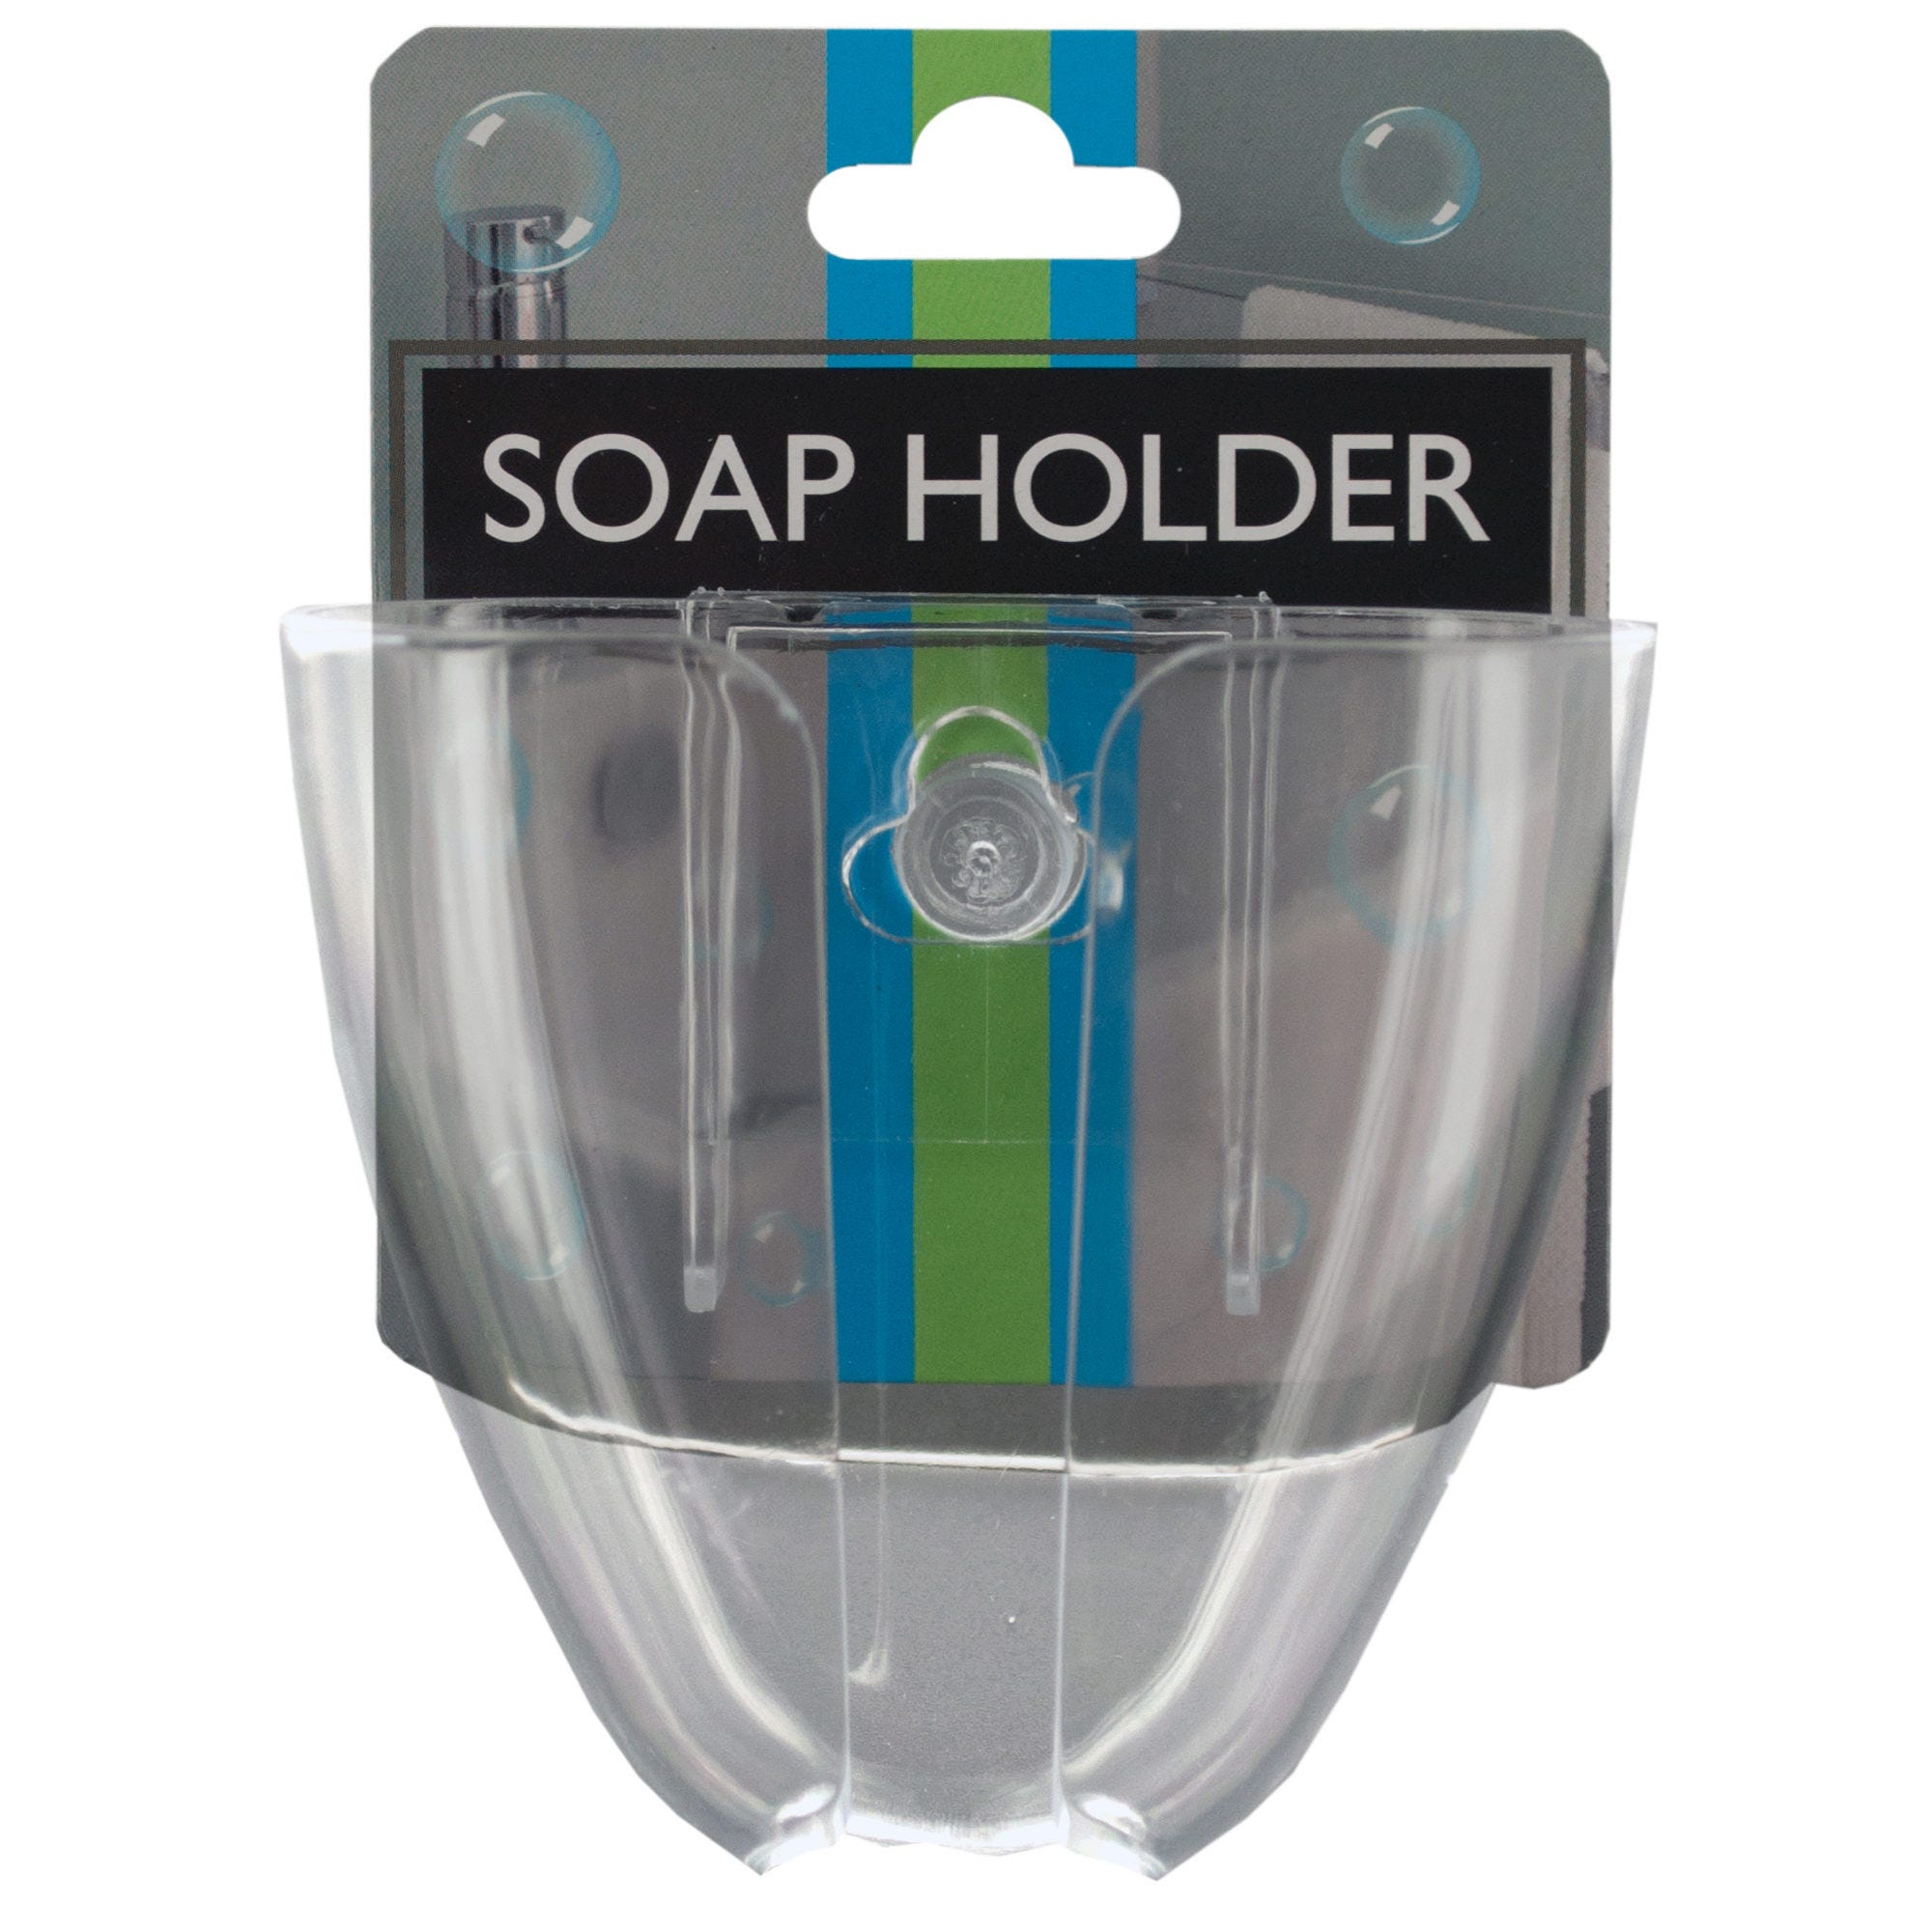 SOAP Holder with Suction Cups- Qty 24